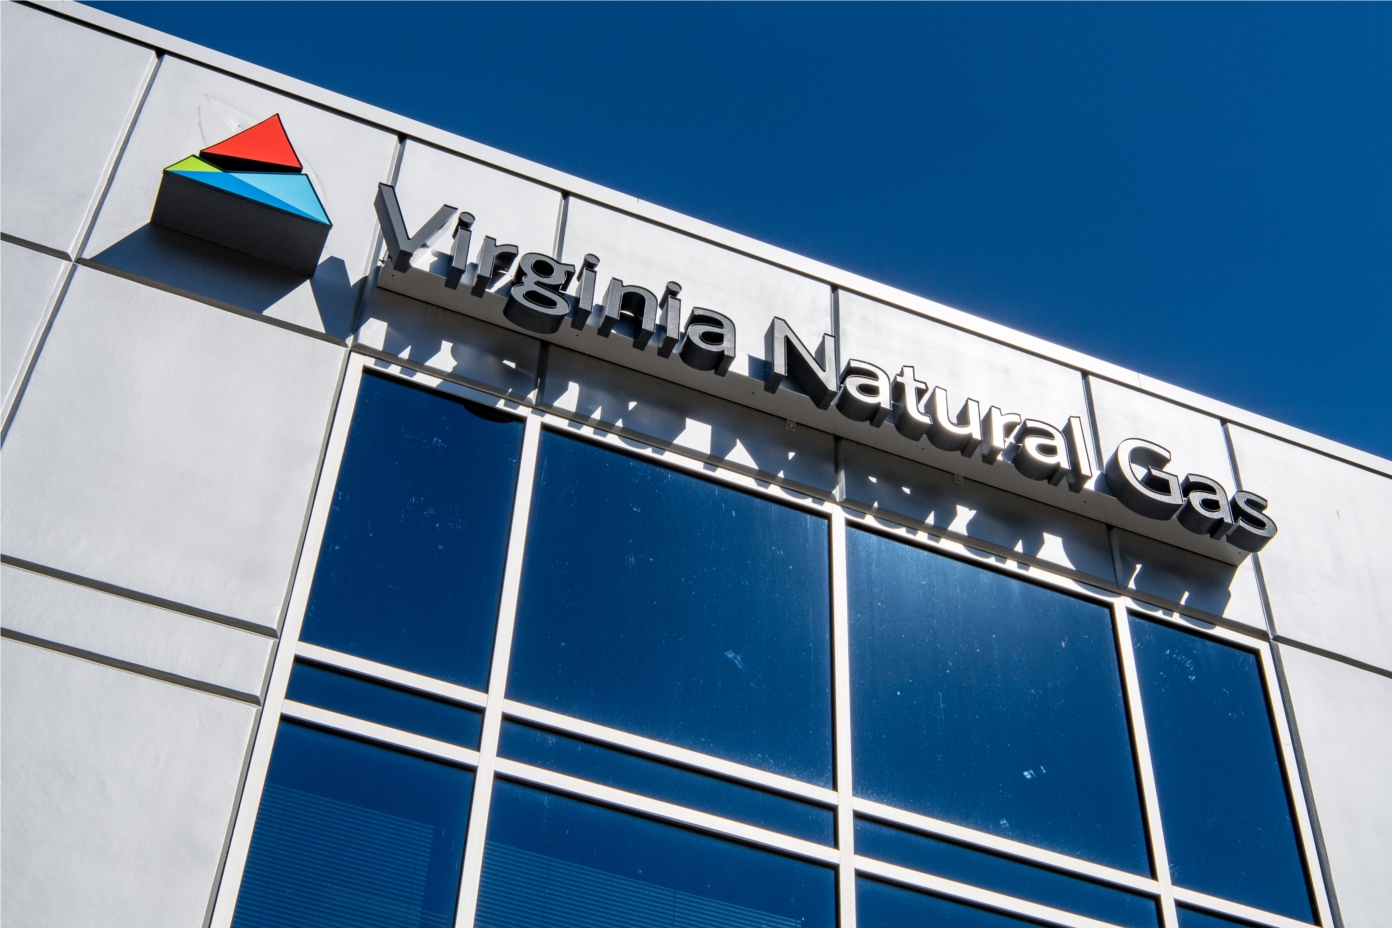 Since 1850, Virginia Natural Gas has provided area citizens, businesses and military installations with clean, safe, reliable and affordable natural gas which keeps people warm, creates jobs and fuels our economy.